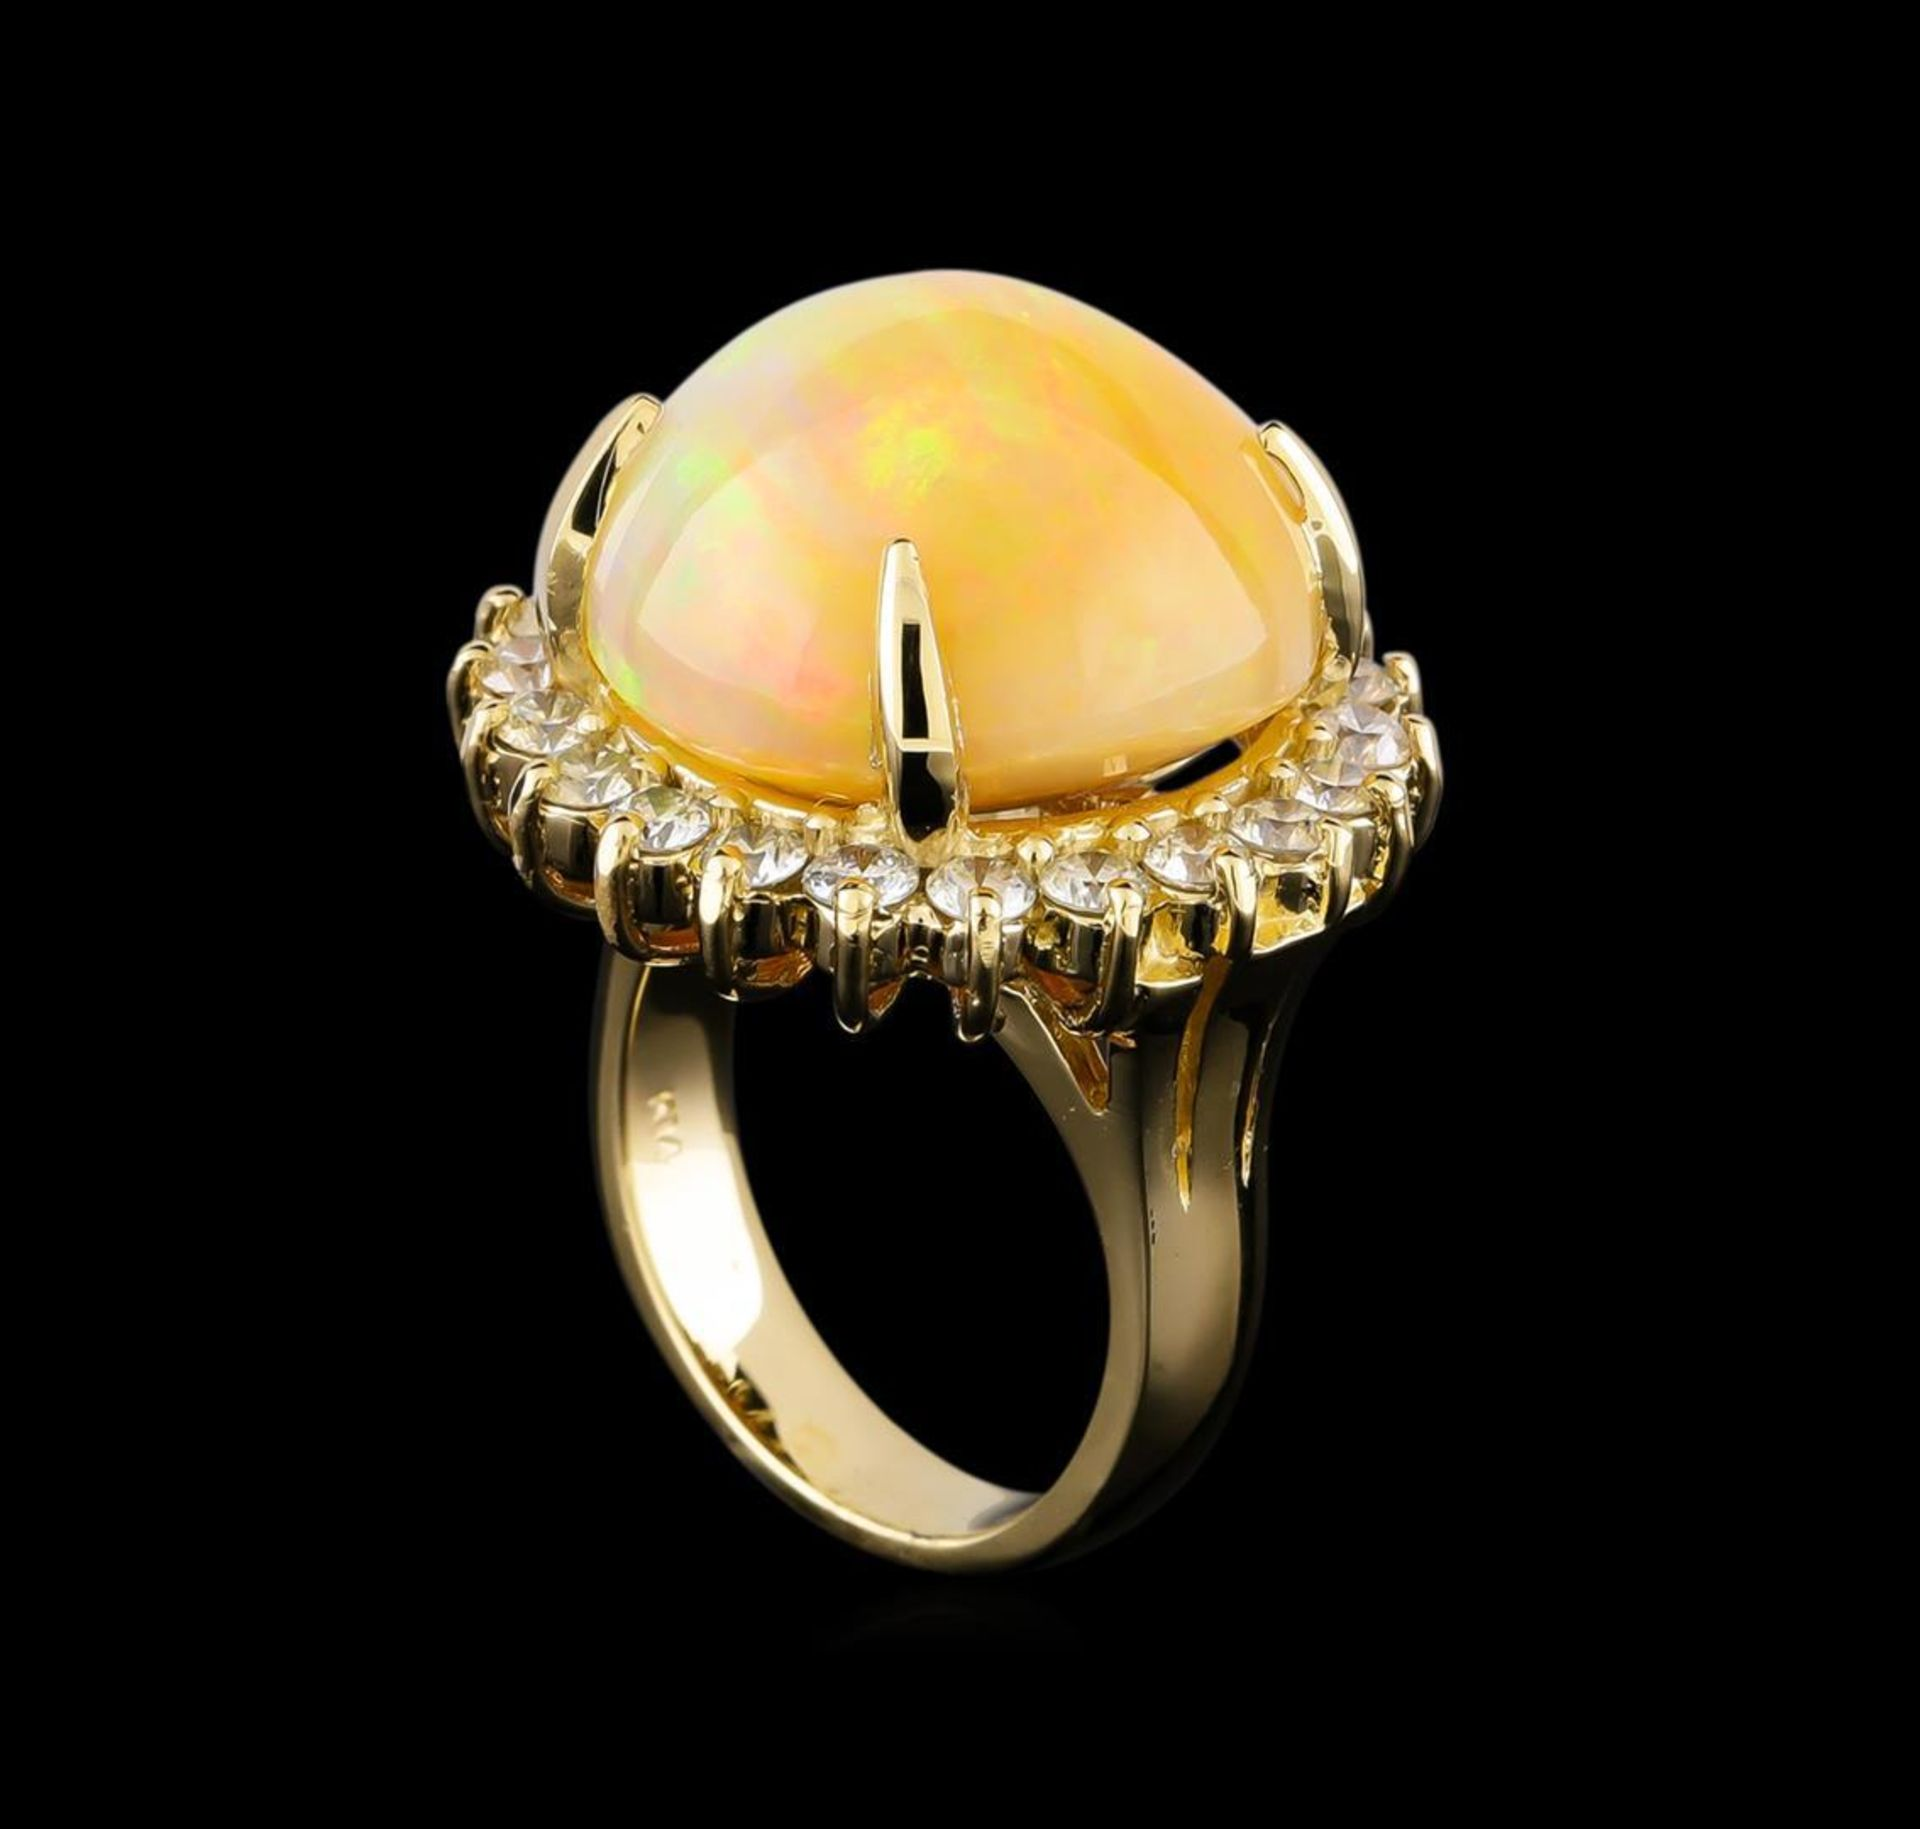 19.85 ctw Opal and Diamond Ring - 14KT Yellow Gold - Image 4 of 5